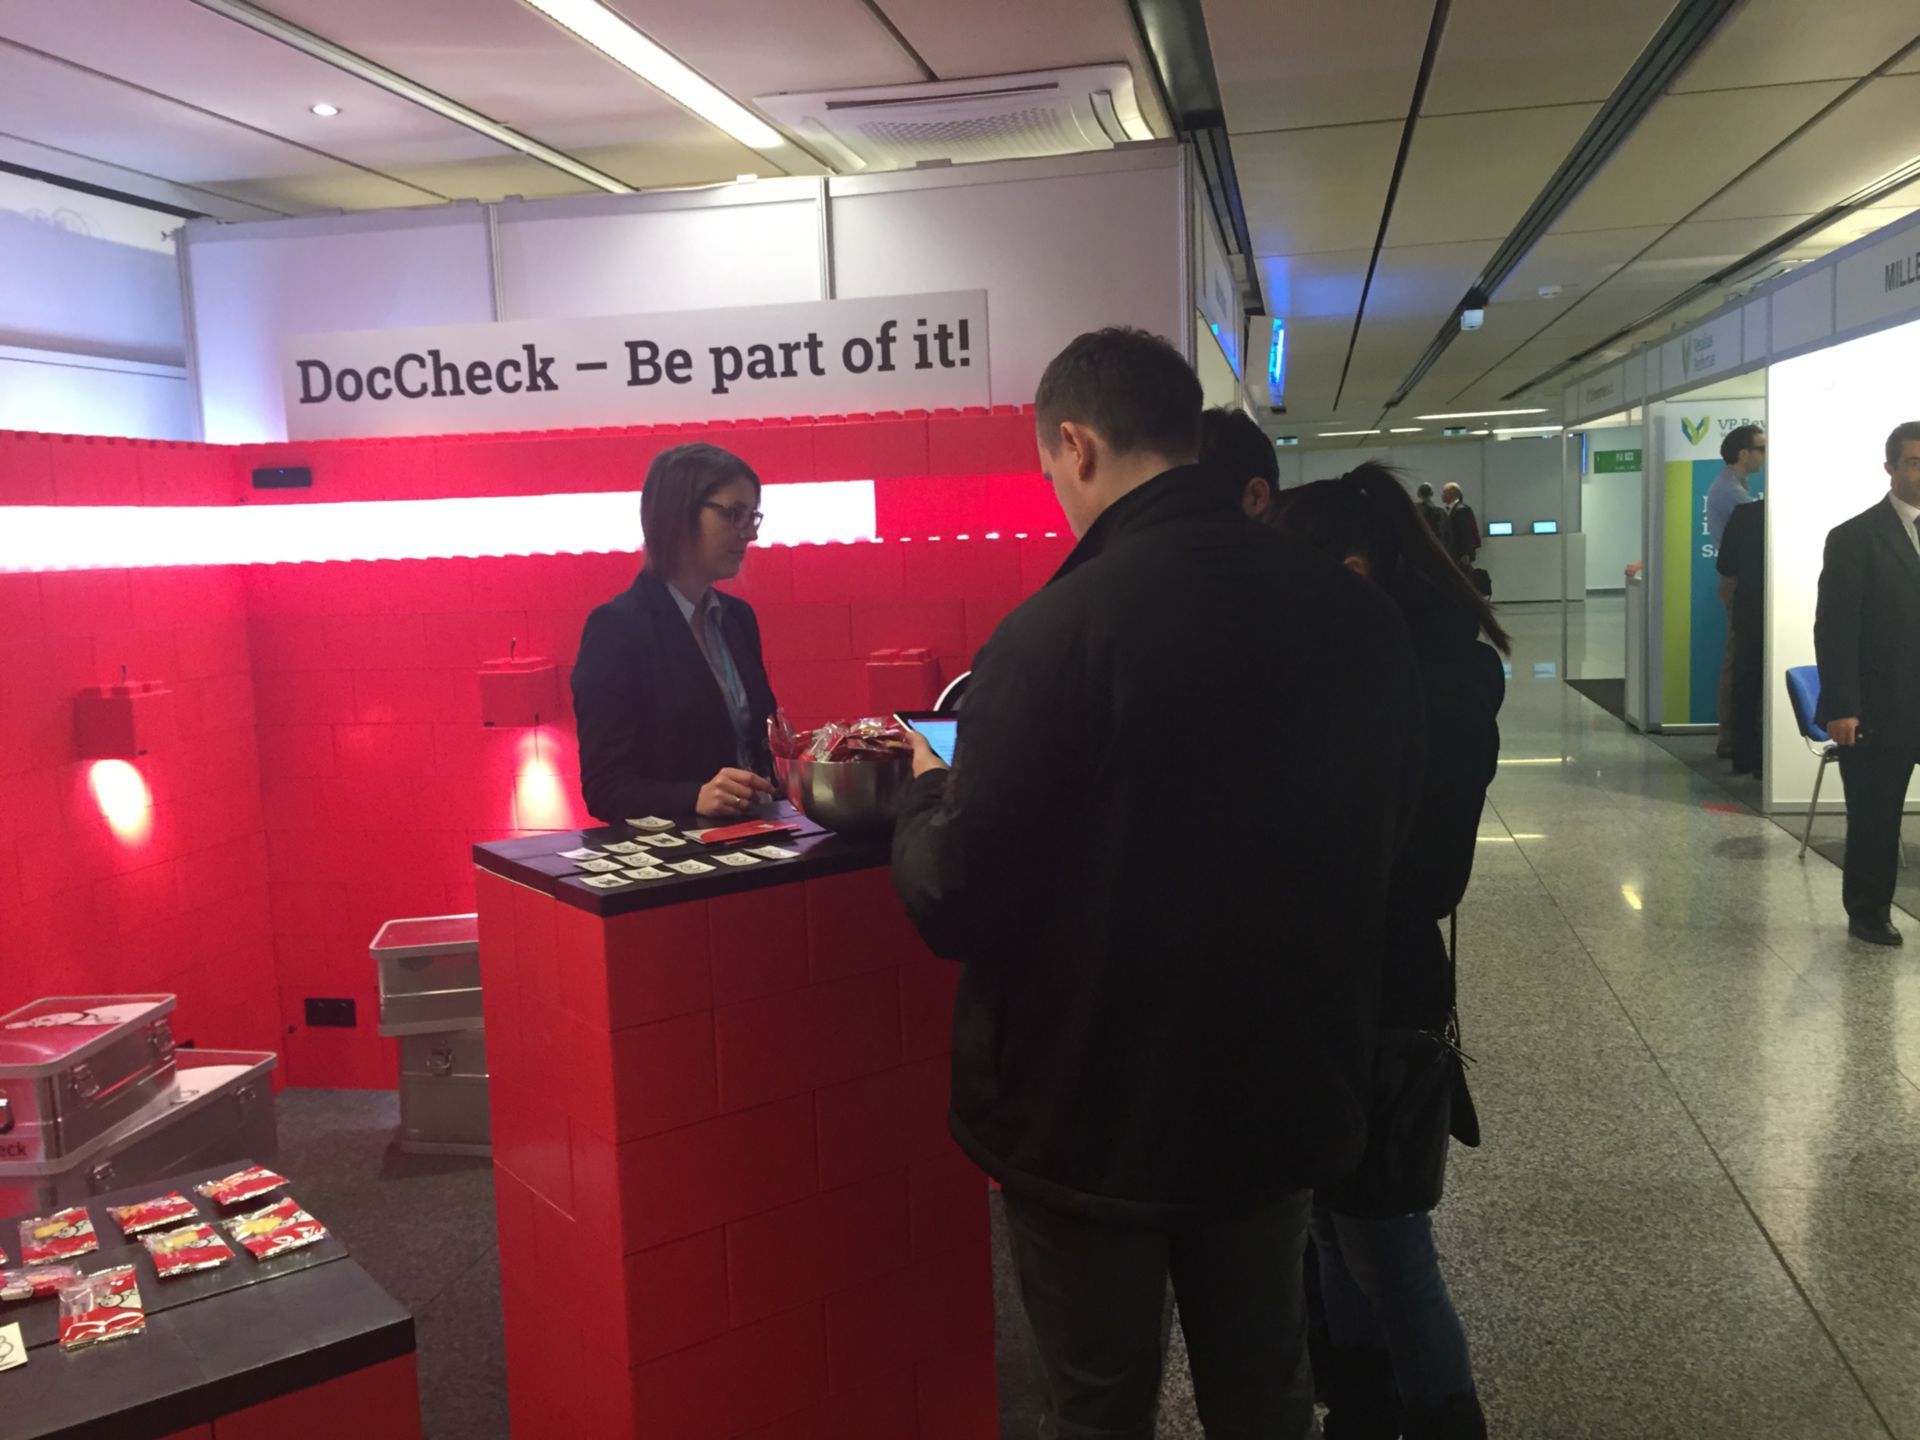 ECR 2016 - Day 3: We´re still working diligently at the DocCheck Booth (Gallery 613)!